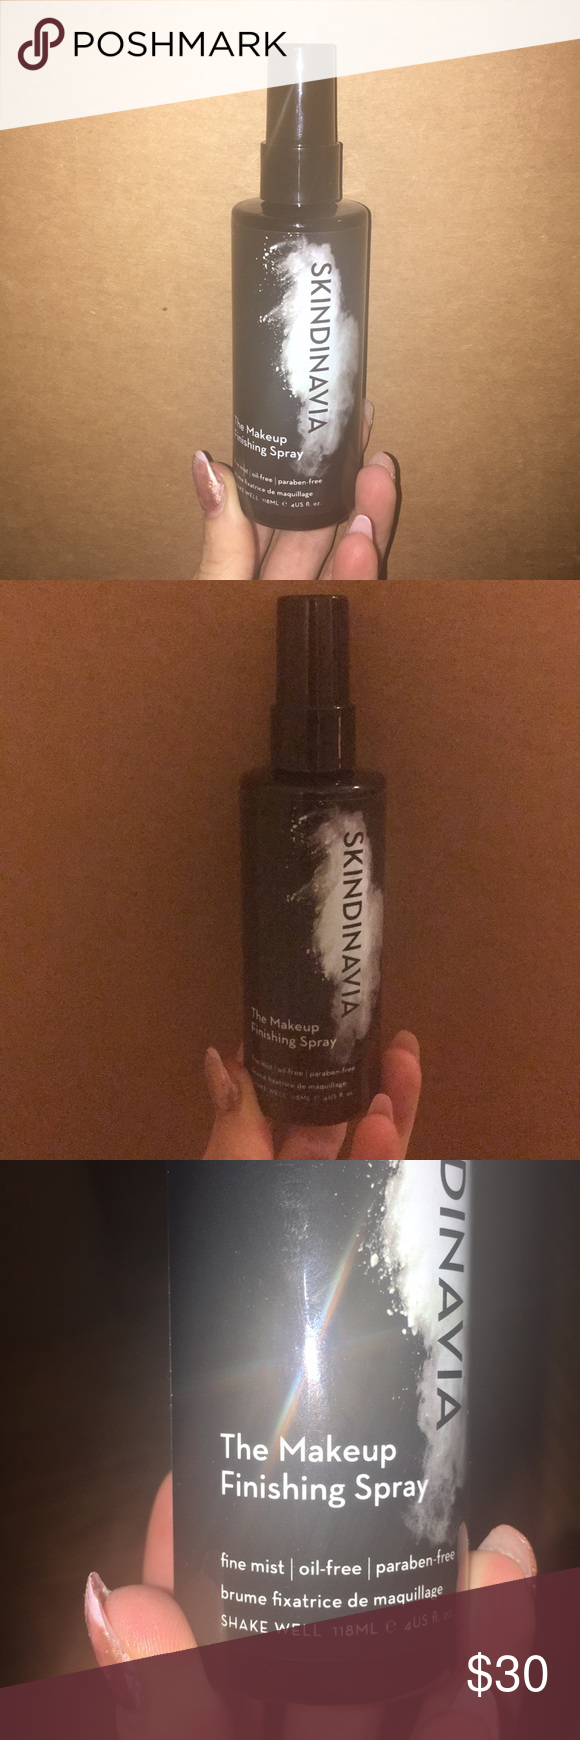 SKINDINAVIA The Makeup Finishing Spray This is a